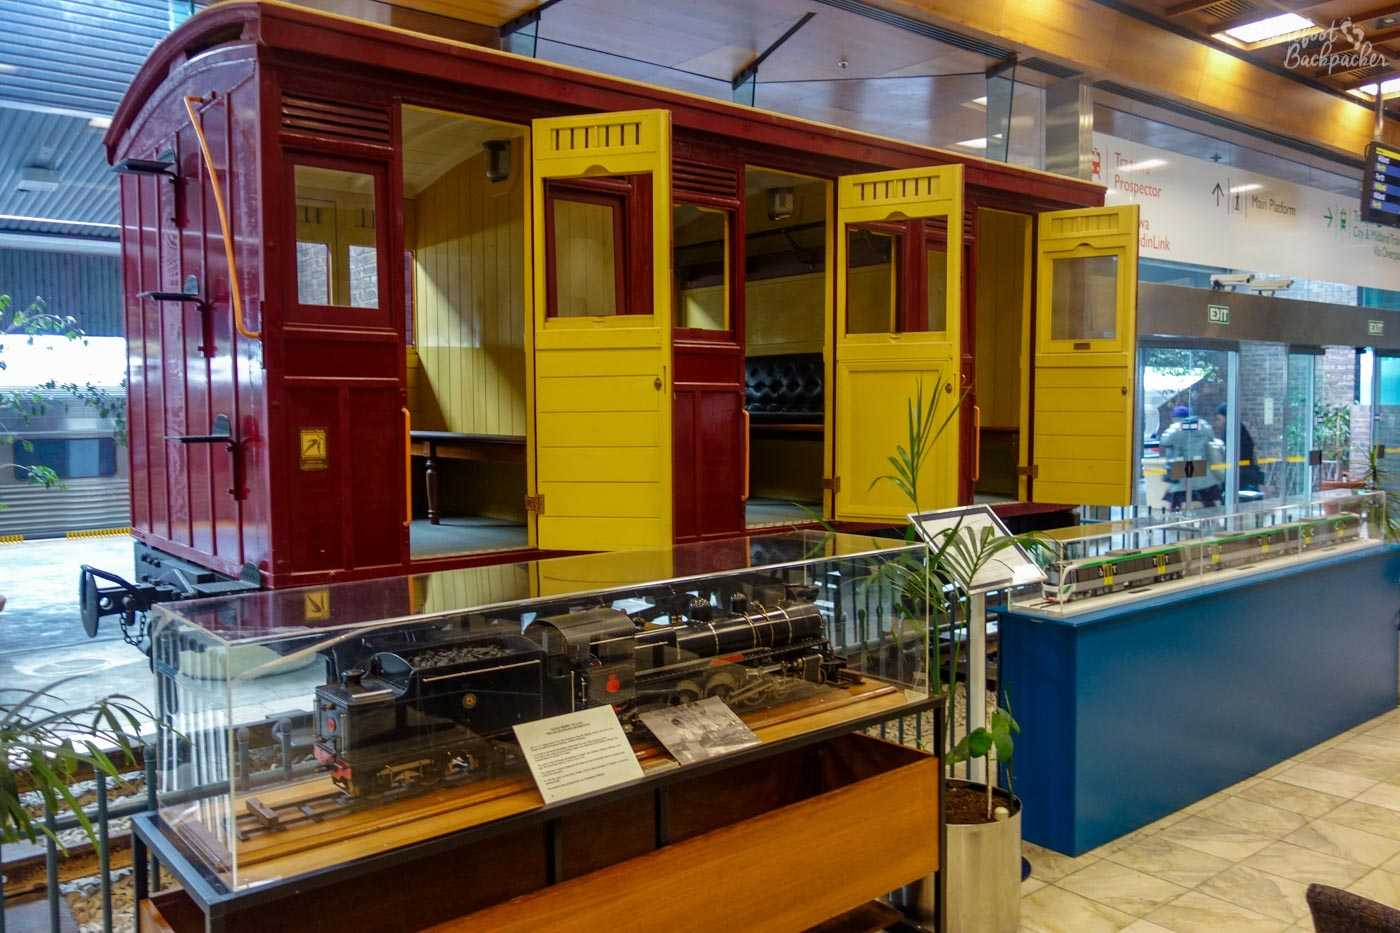 Replicas of an old steam engine and an old train carriage, at East Perth Railway Station.